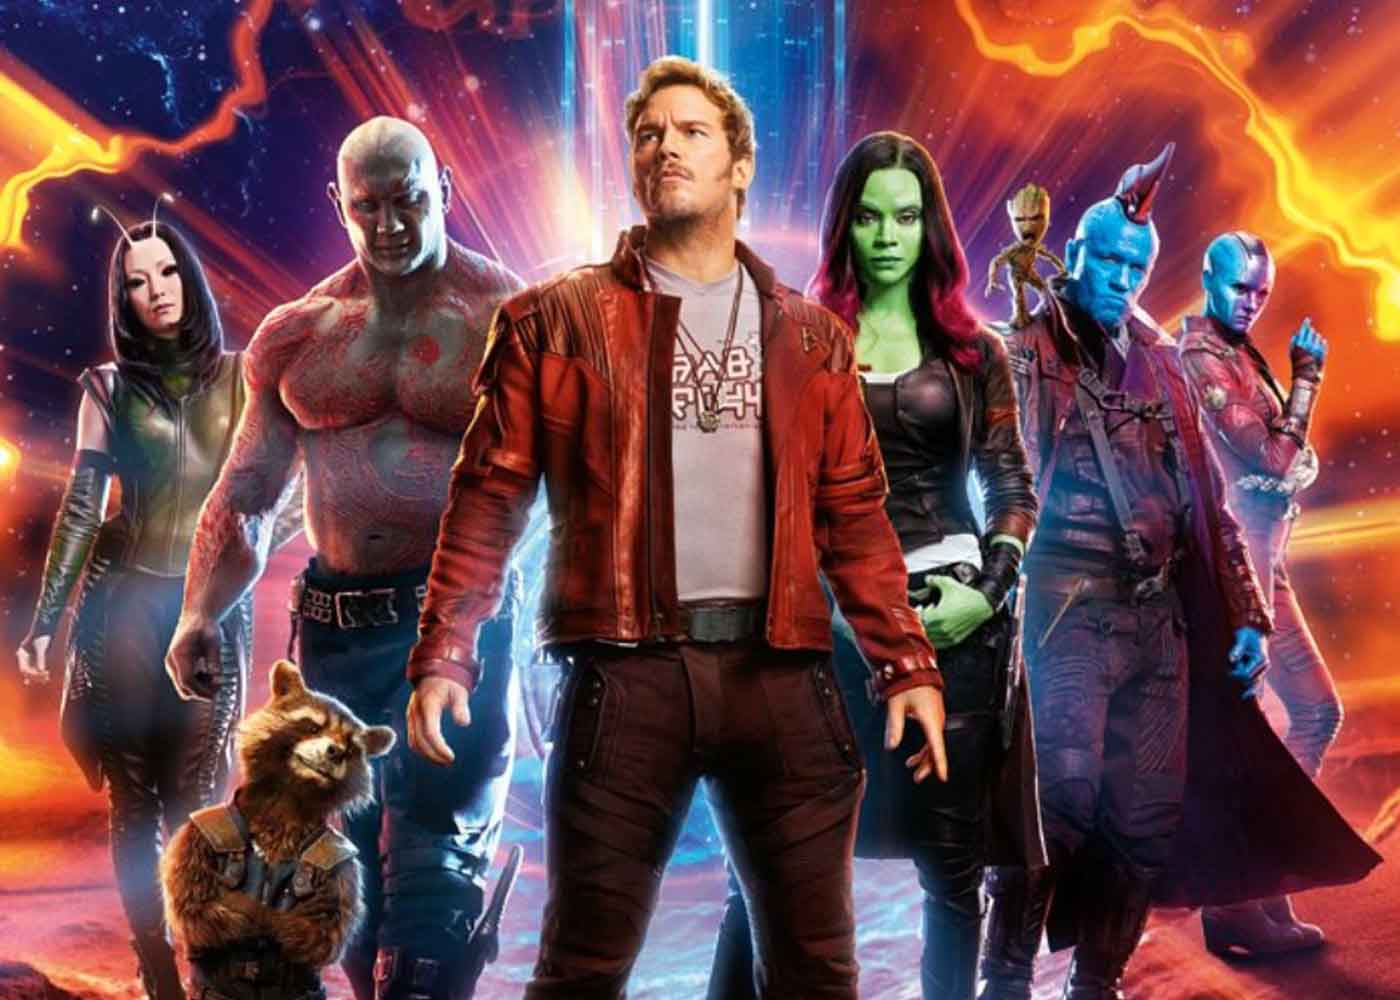 How The Guardians of the Galaxy Might Influence the Future of the MCU